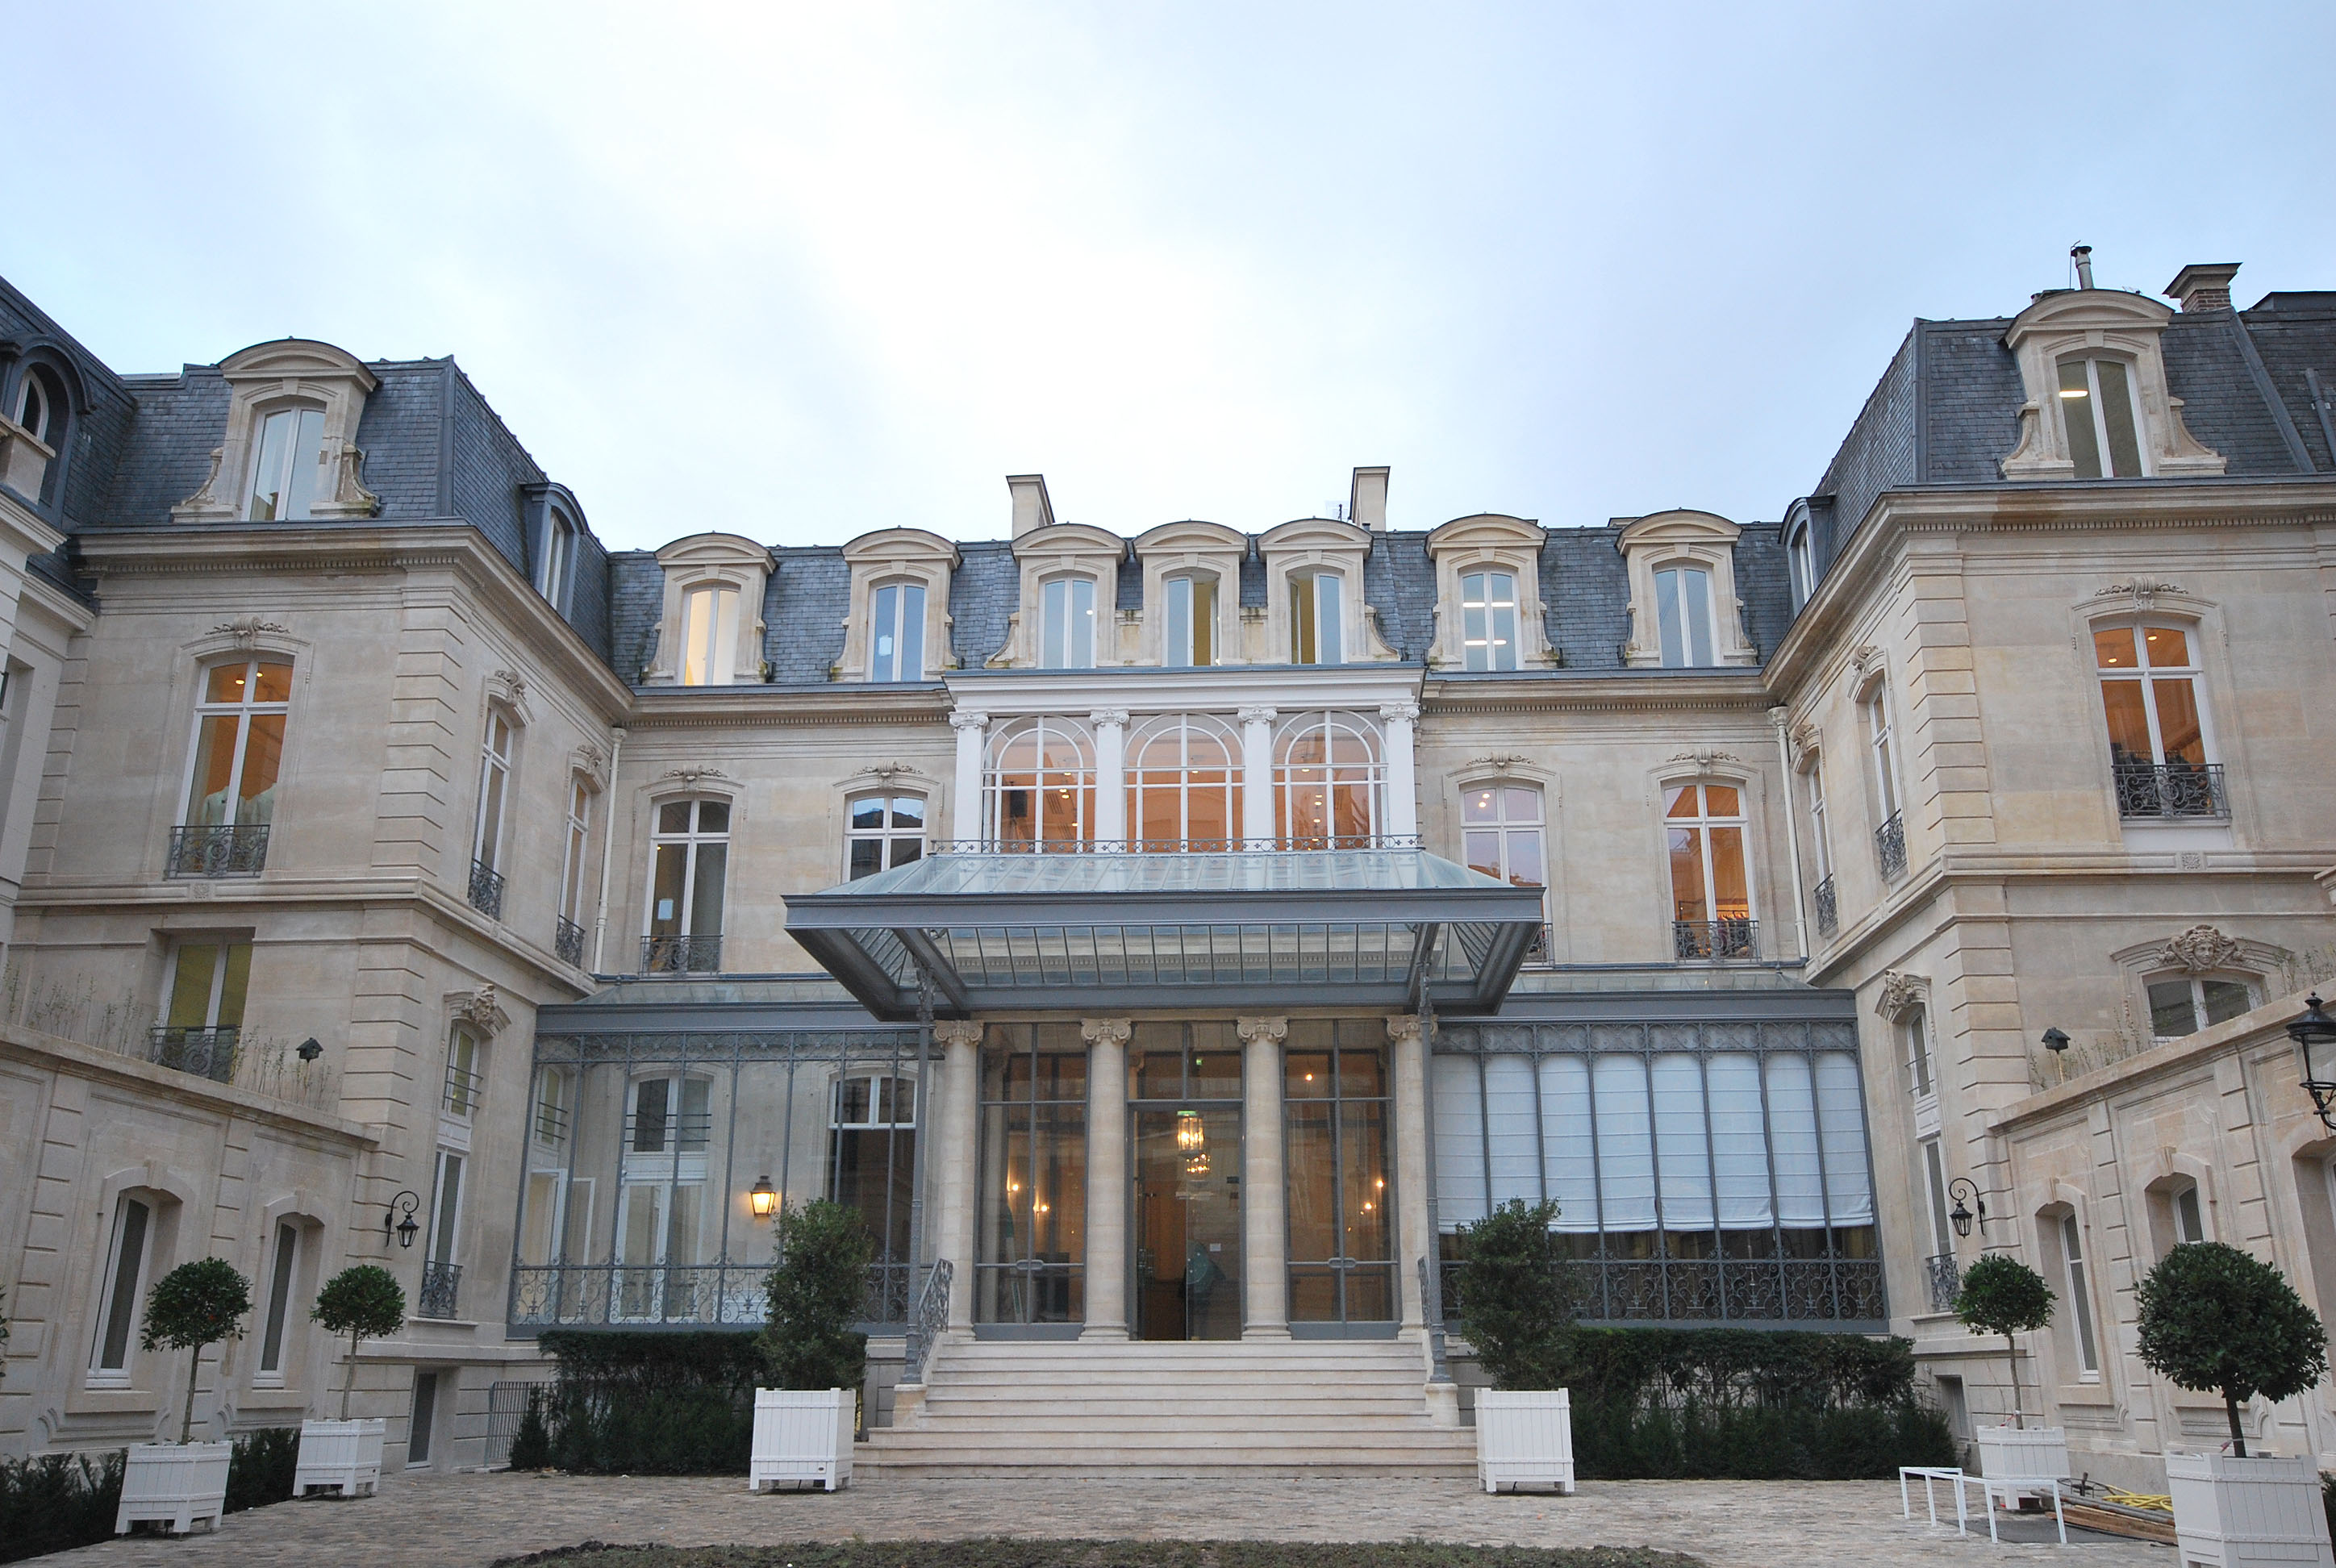 AASG 137 FAUBOURG ST HONORE VUE GENERALE